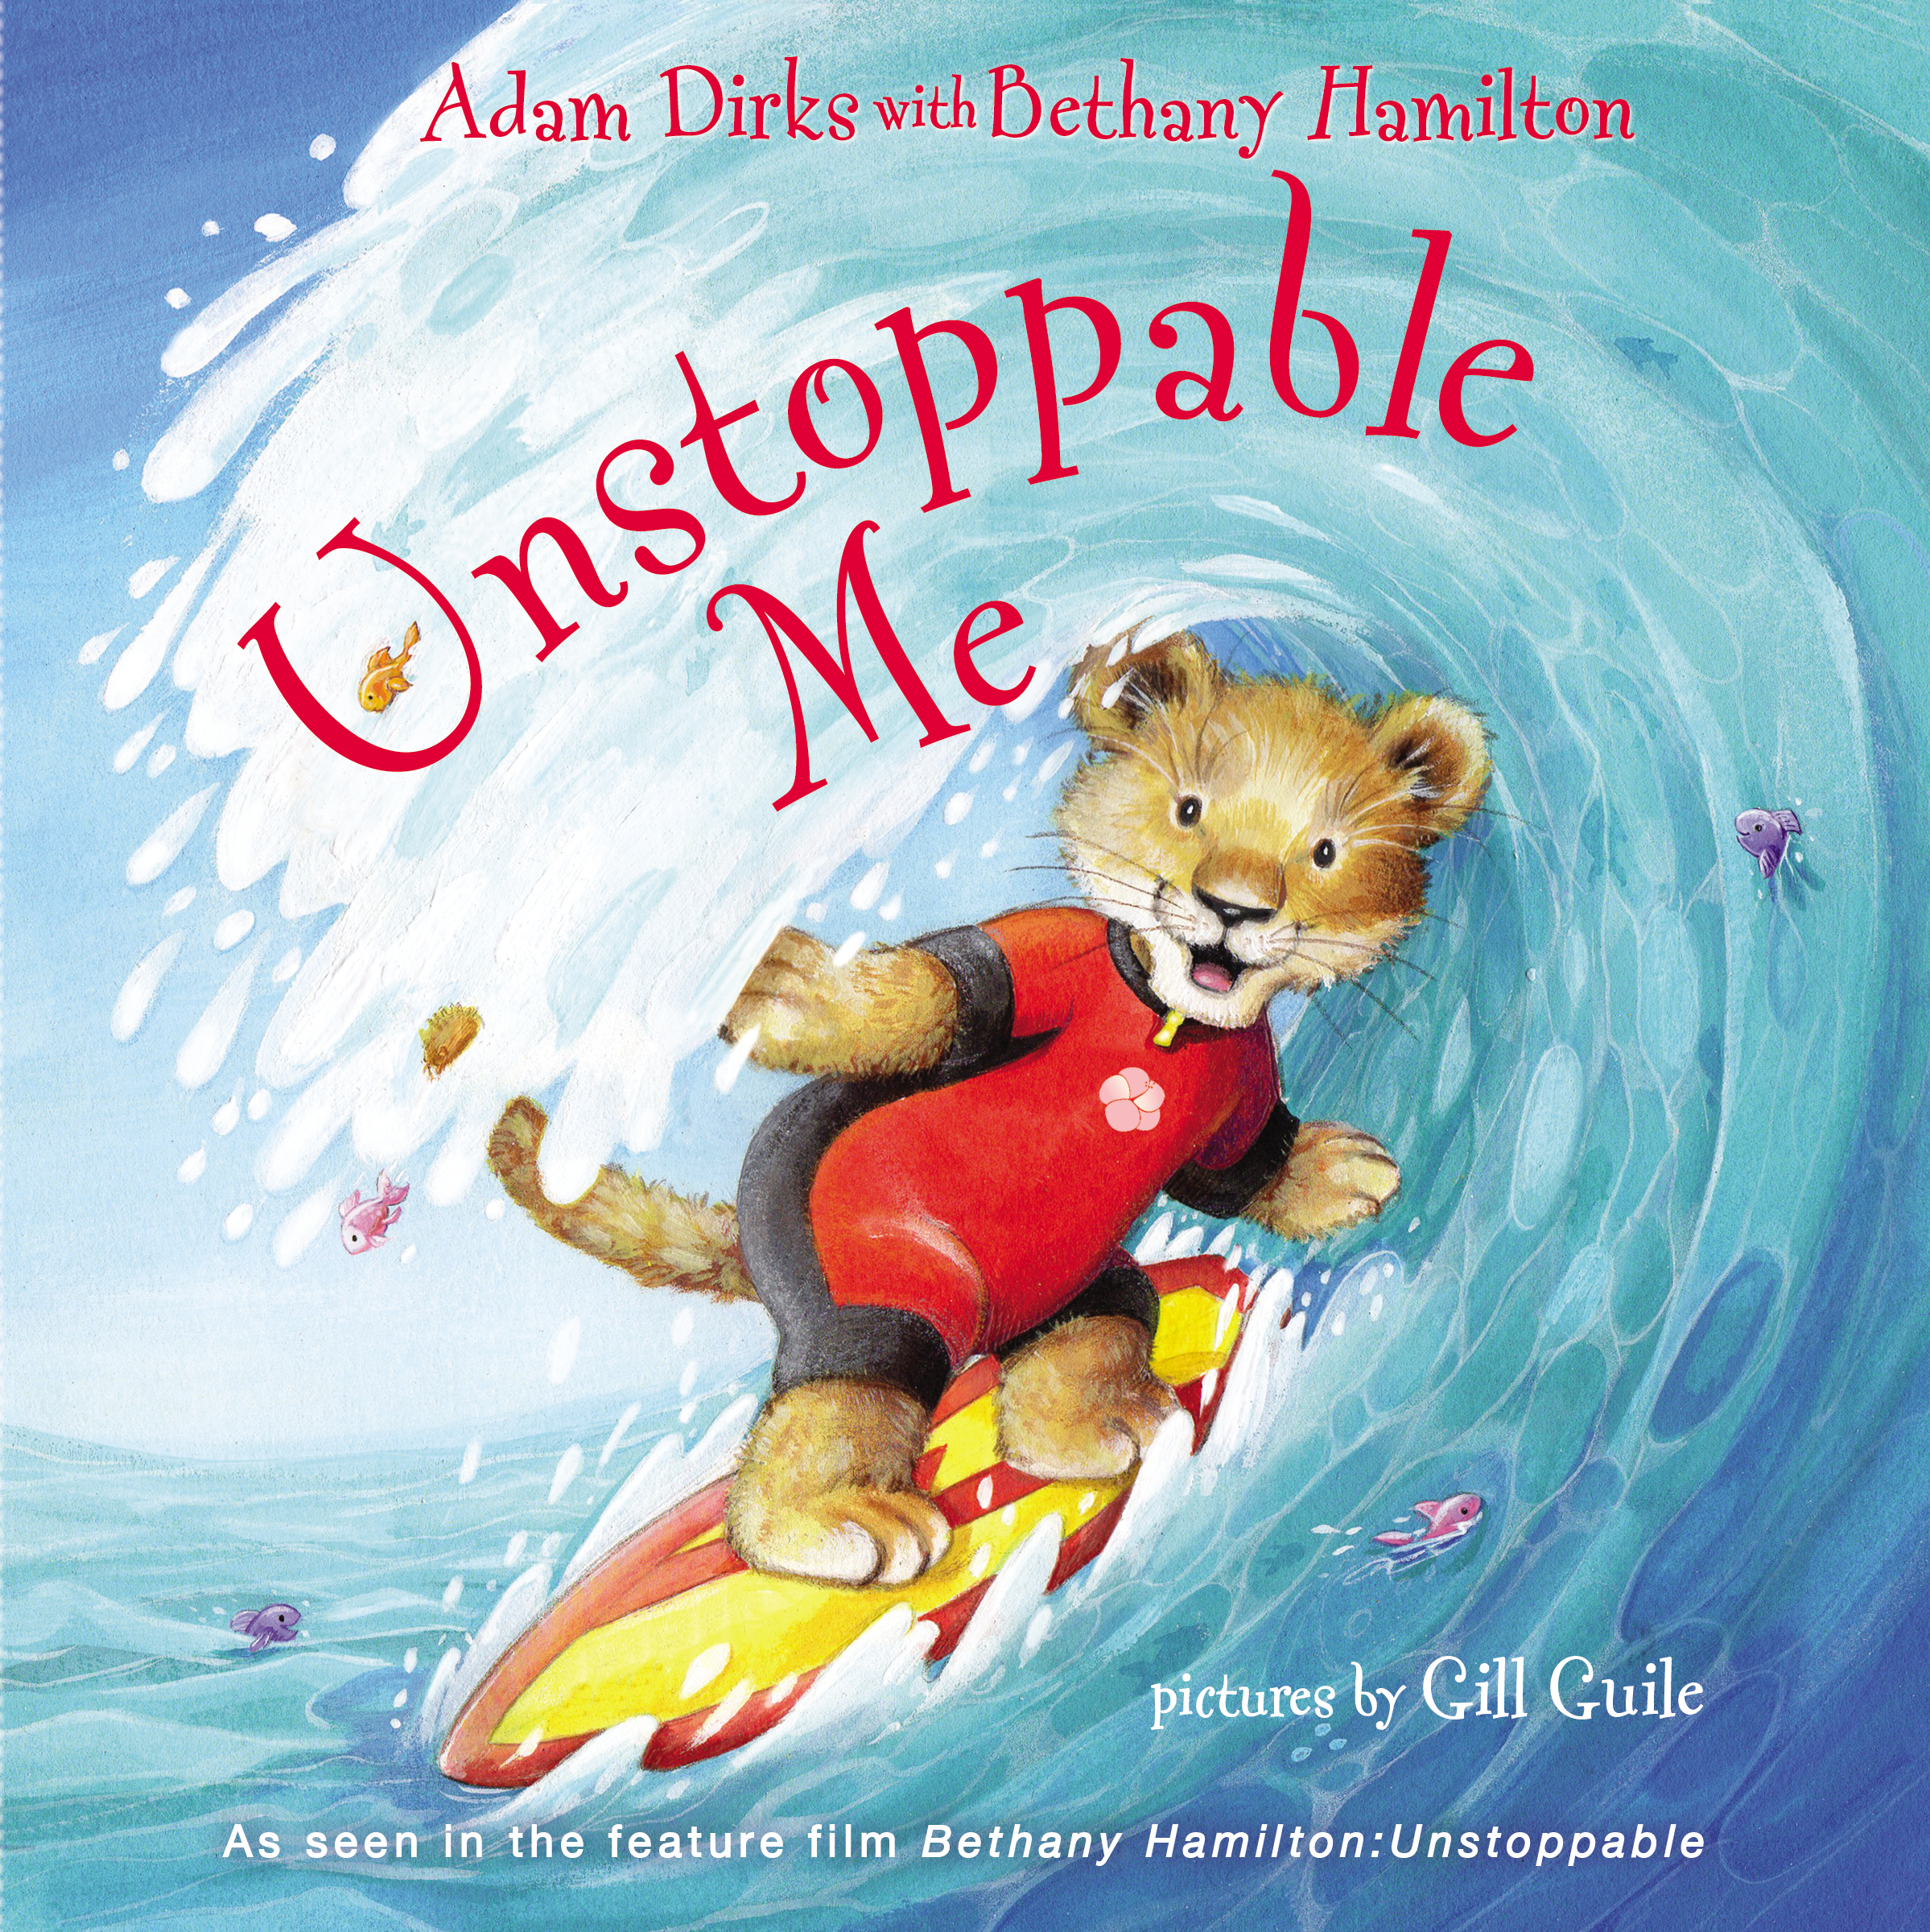 Unstoppable Me book by Bethany Hamilton & her husband, Adam Dirks